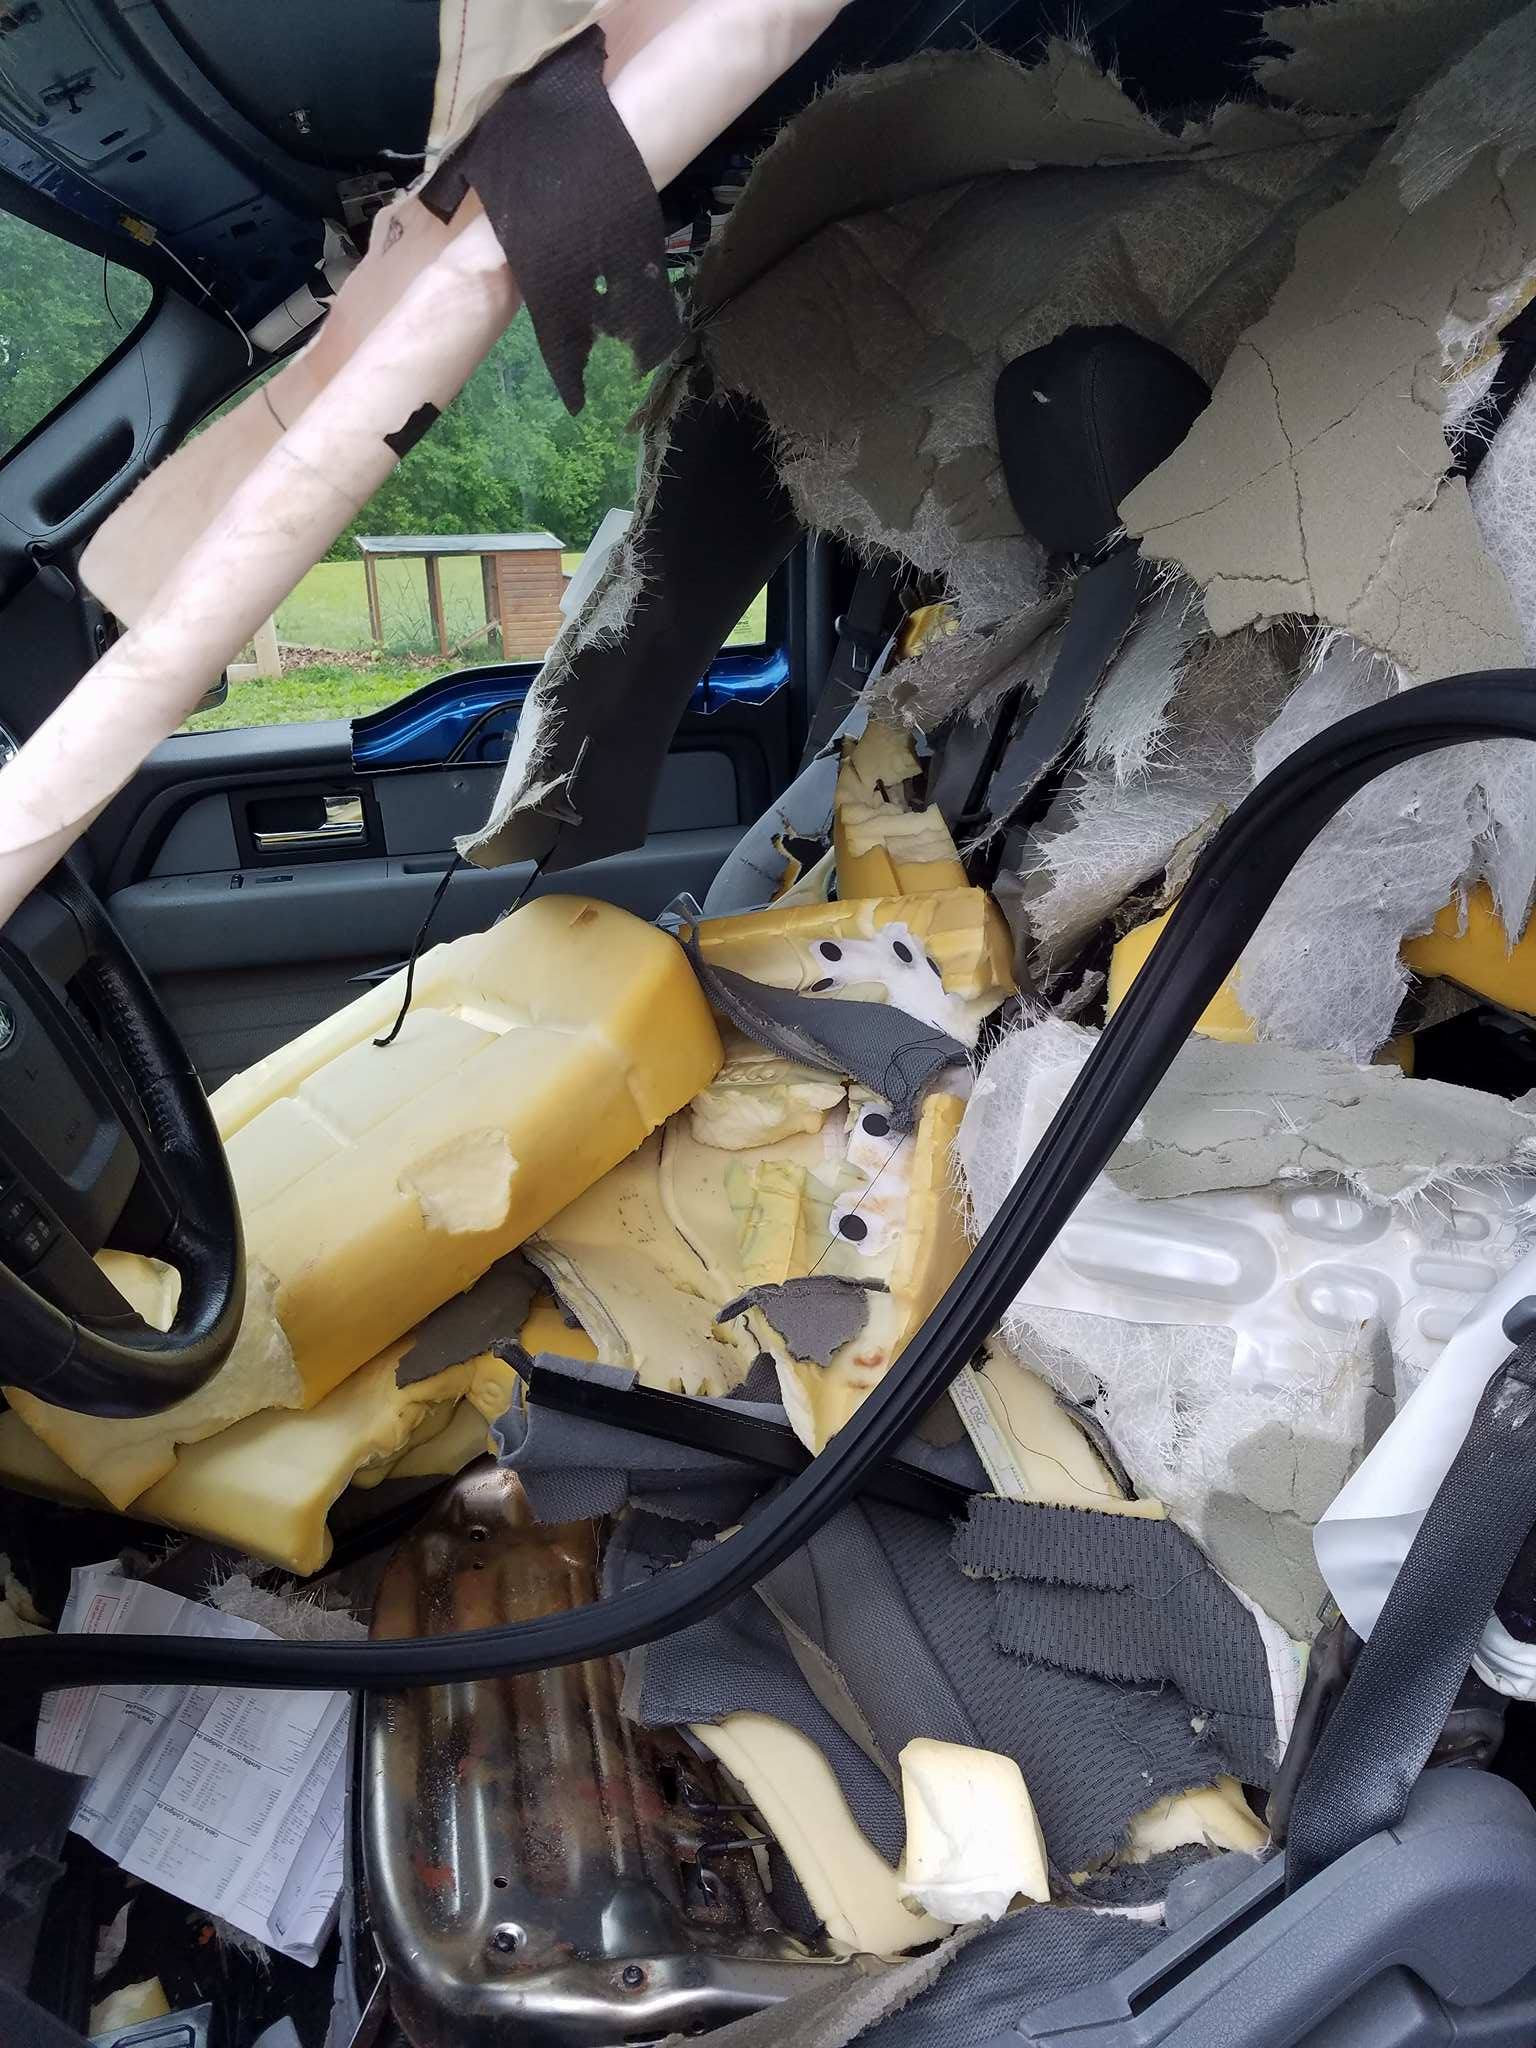 bear inside car last week in roanoke not only one one recently at wintergreen too blue. Black Bedroom Furniture Sets. Home Design Ideas